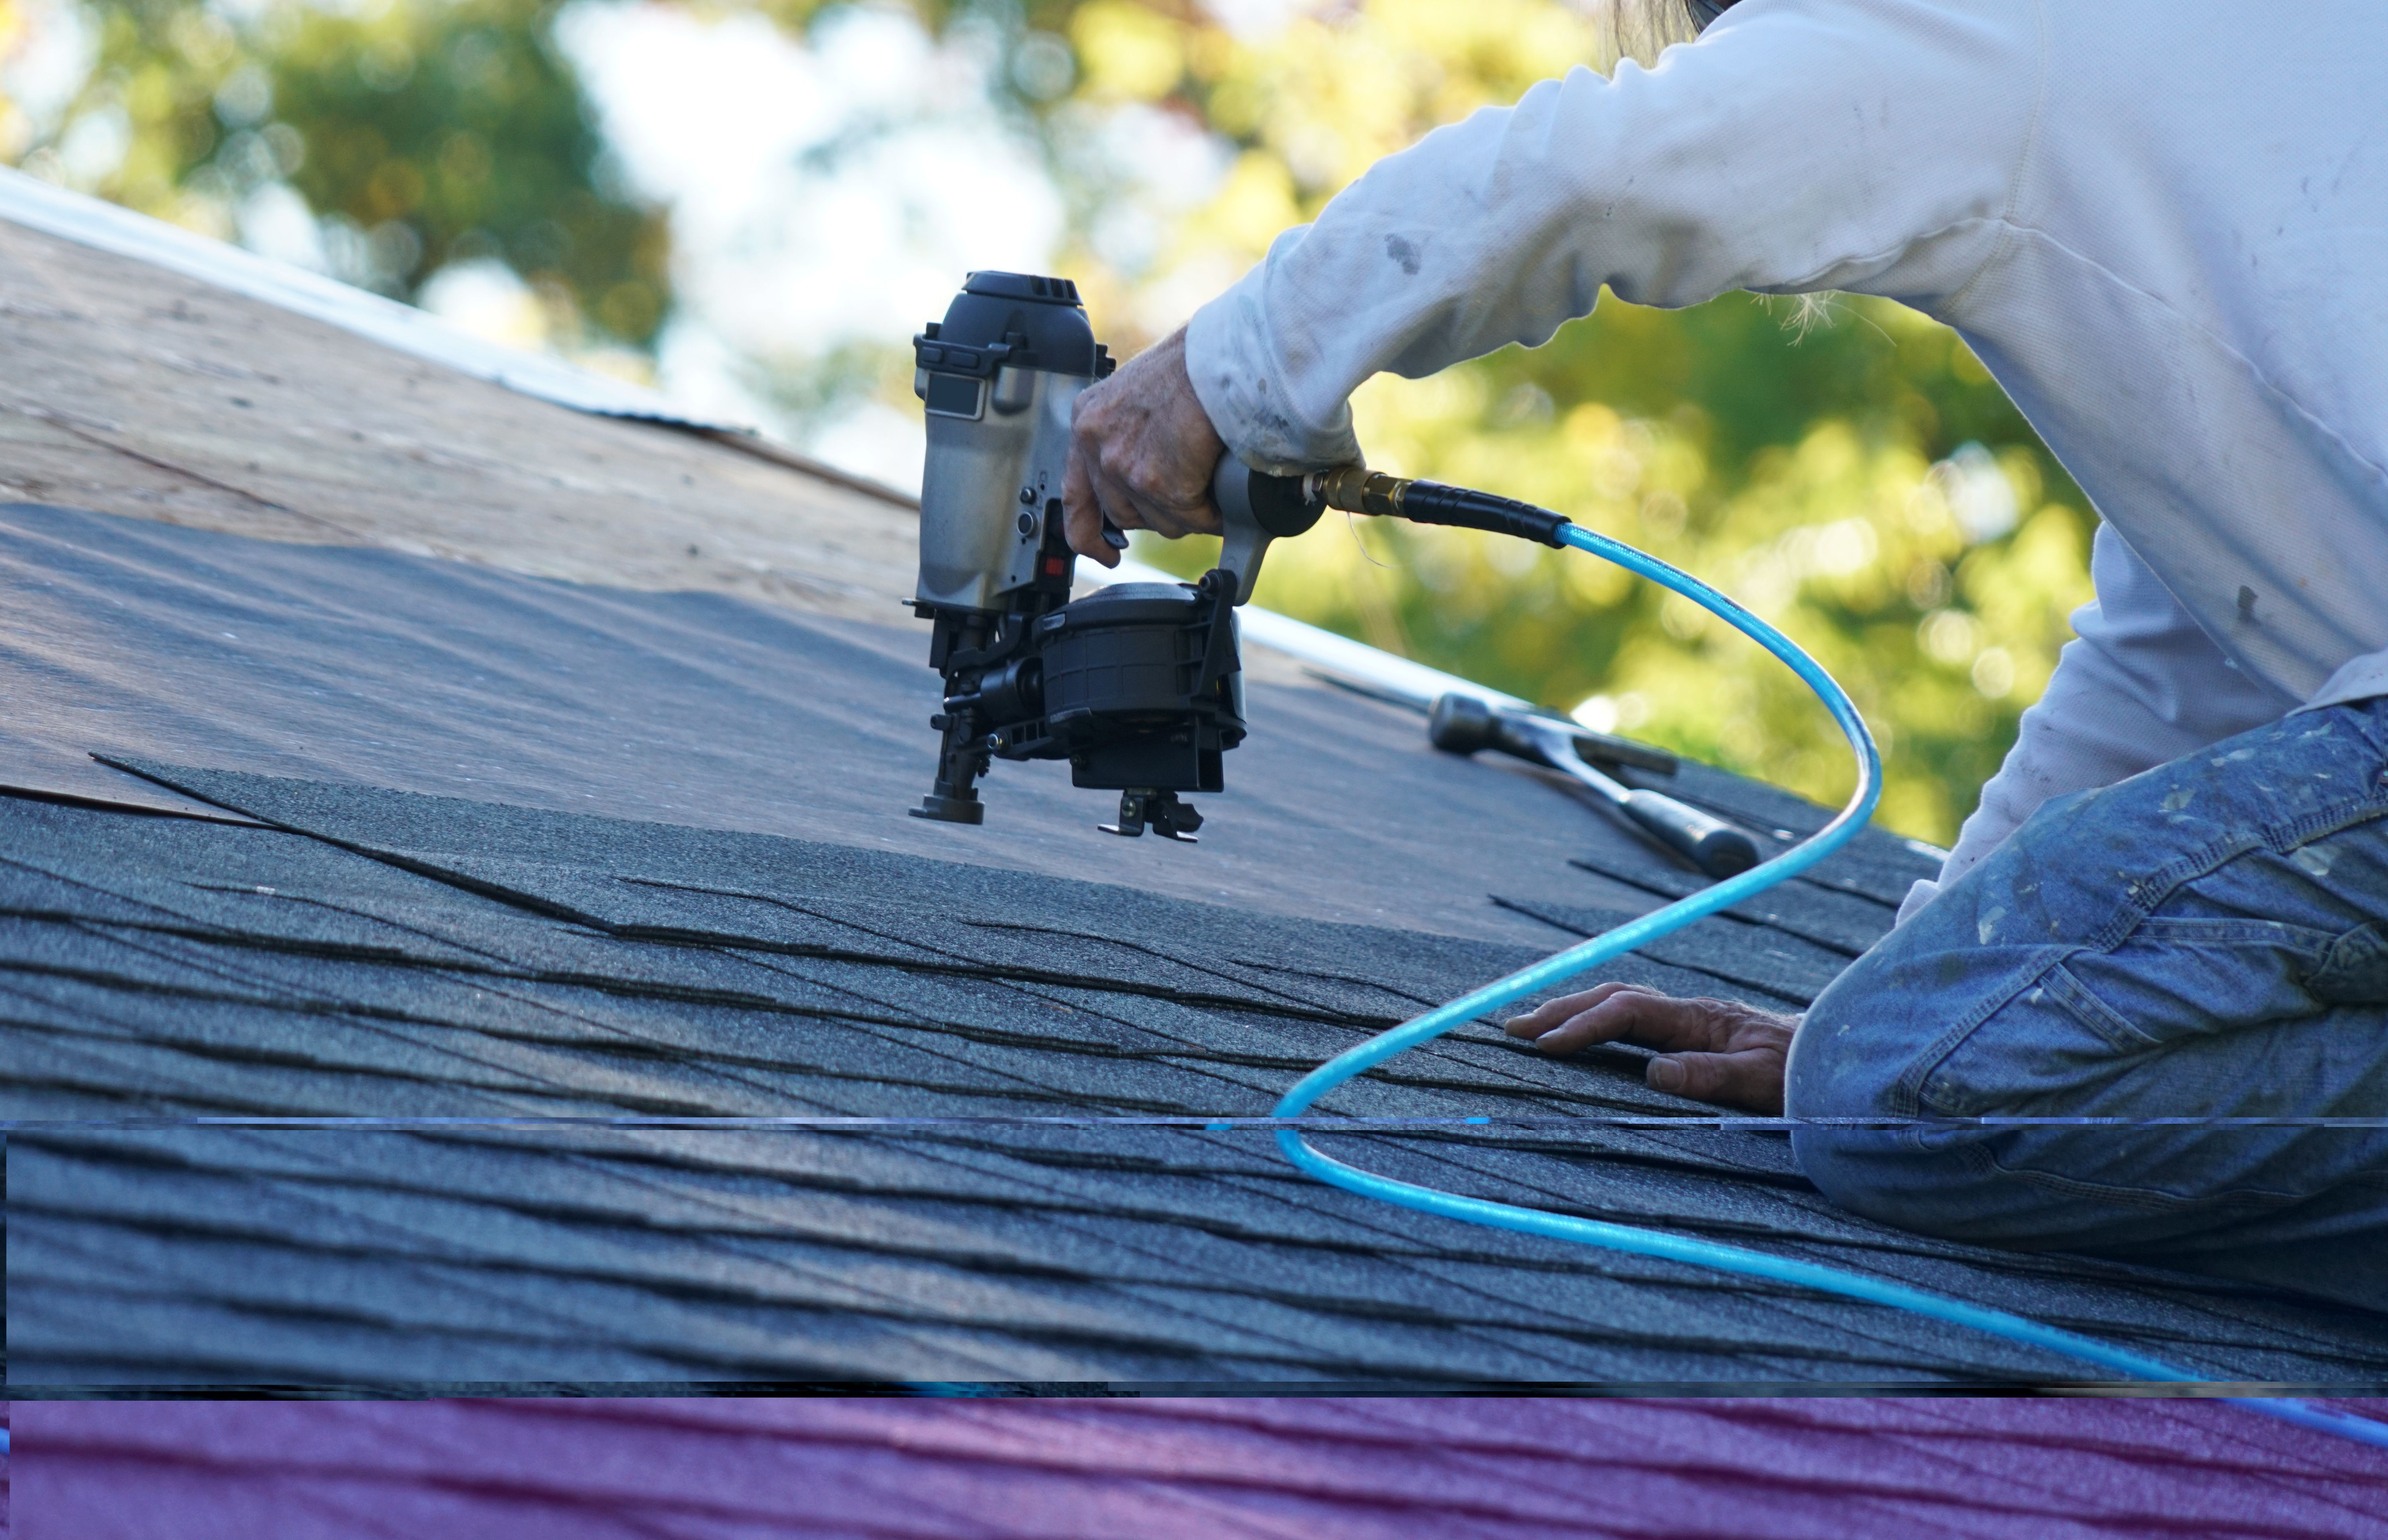 Beaverton Contractor Now Offers Residential Commercial And Church Roof Repairs With Images Roof Repair Roof Cost Renovation Contractor